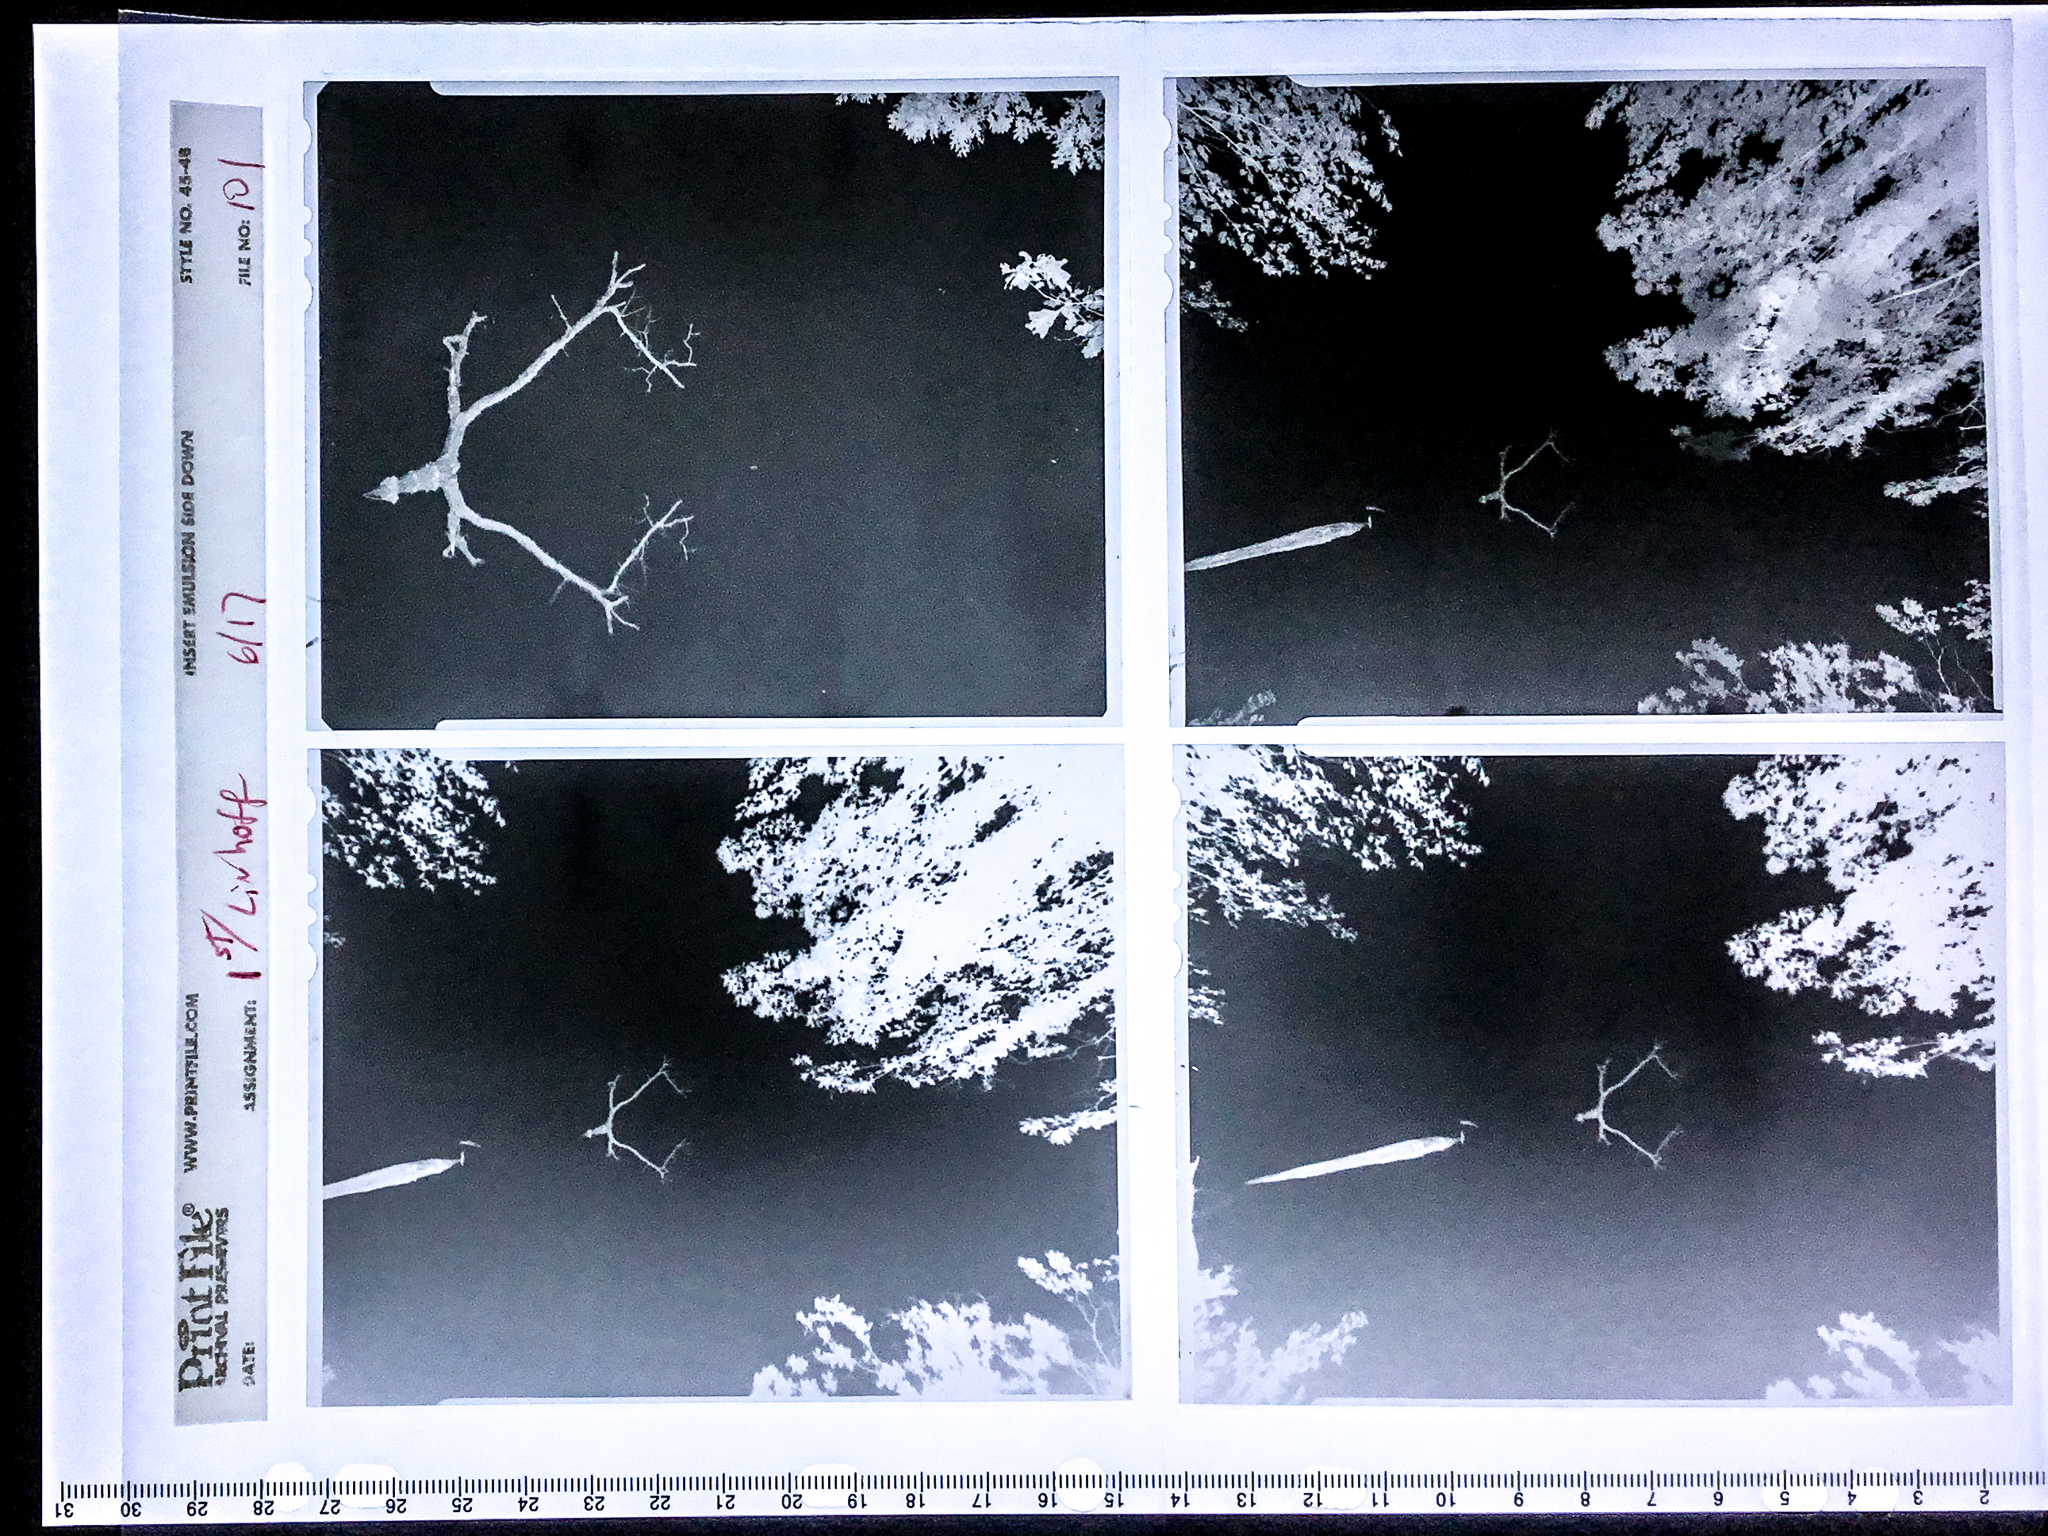 """Negative Contact Prints"" will occasionally be posted along with a selected image shot on film."